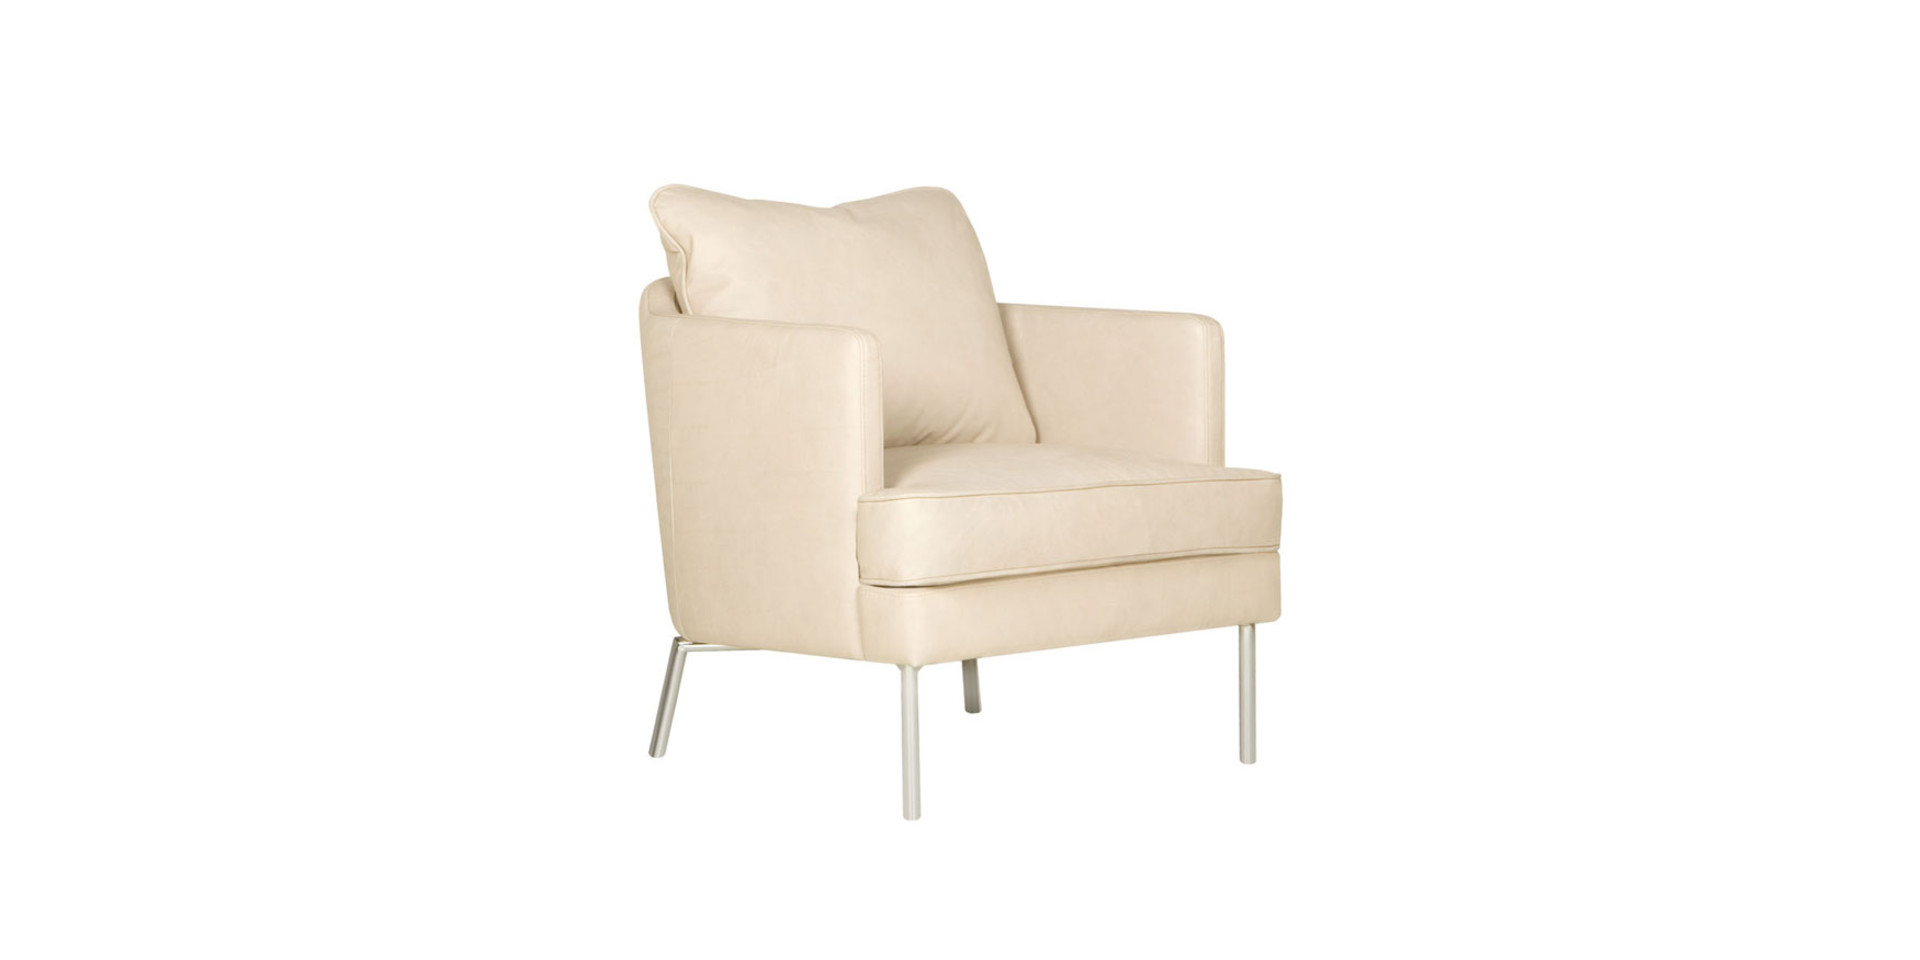 sits-julia-fauteuil-armchair_aniline_sand_2